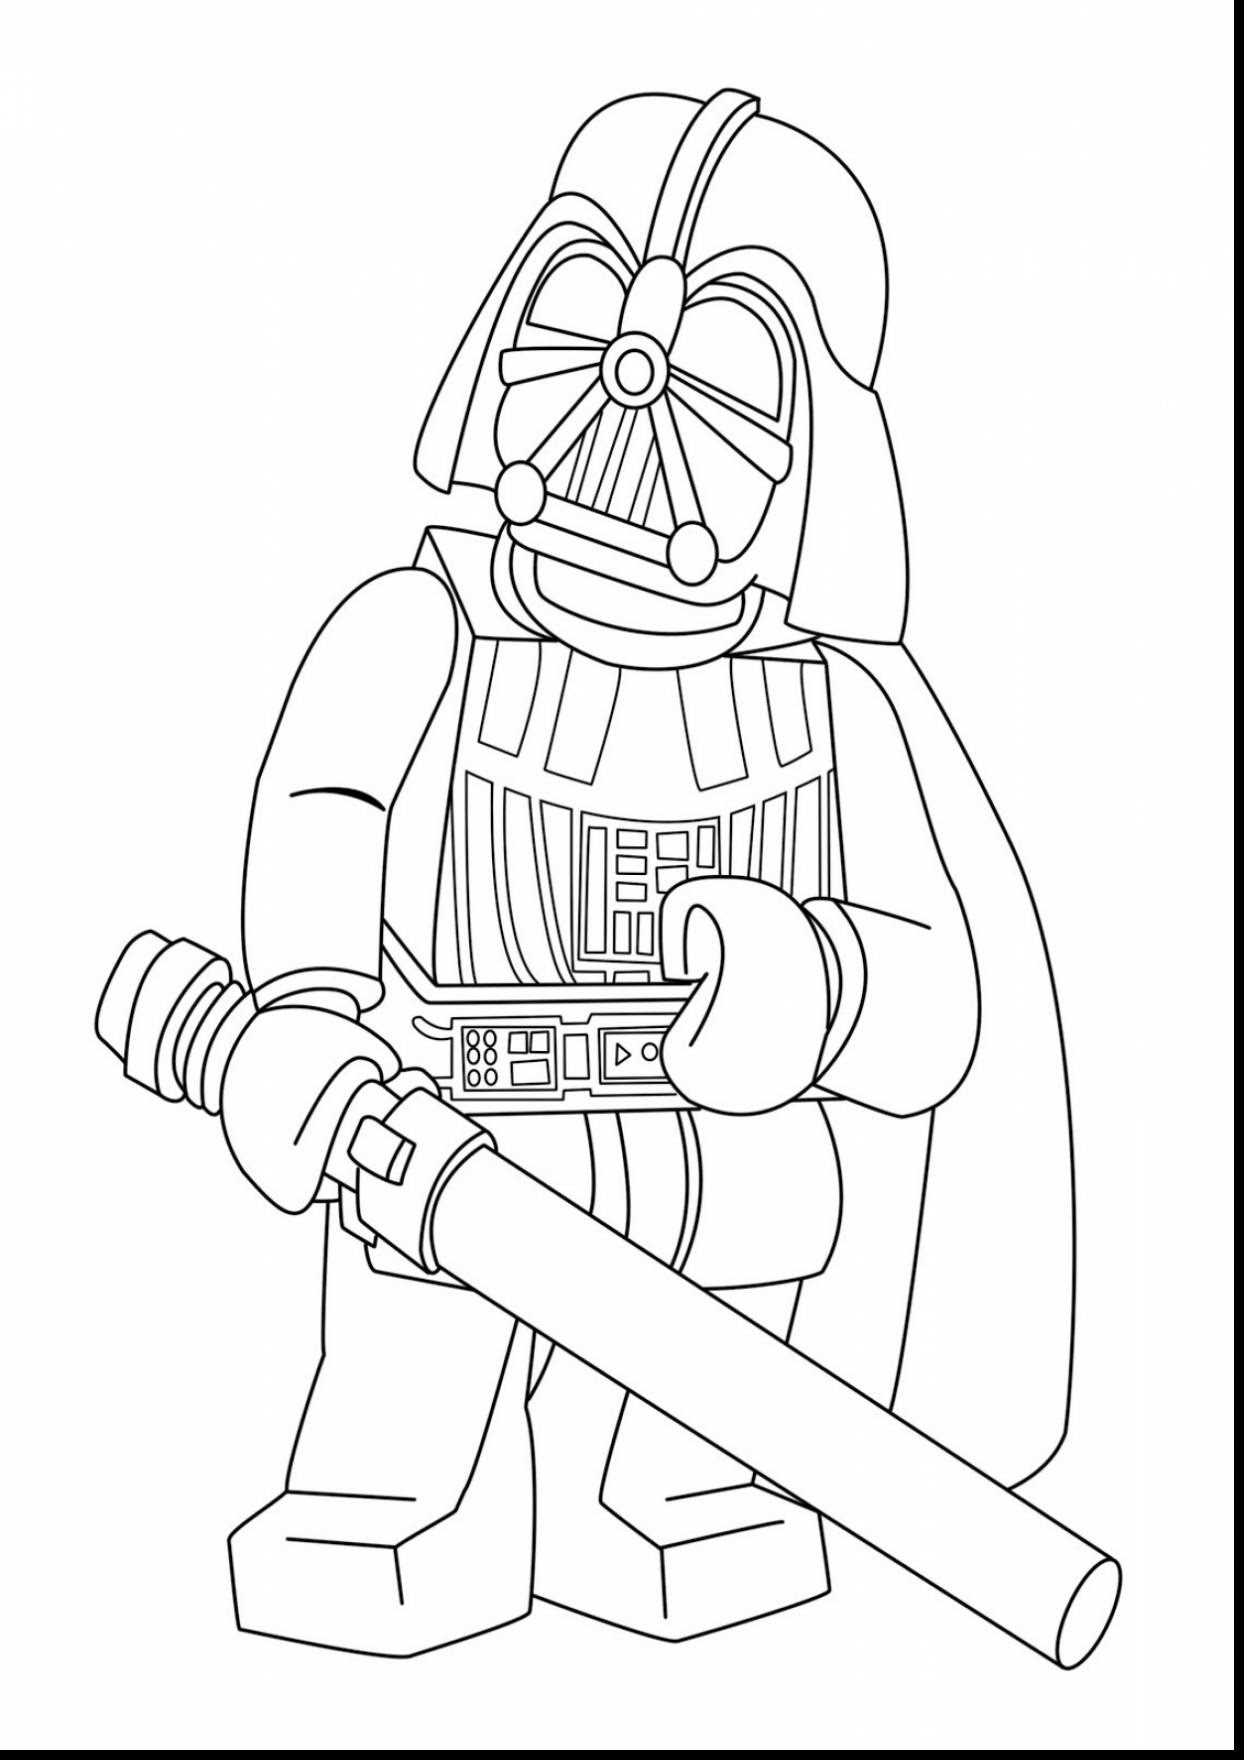 Download Star Wars Anakin Coloring Pages at GetColorings.com   Free printable colorings pages to print ...